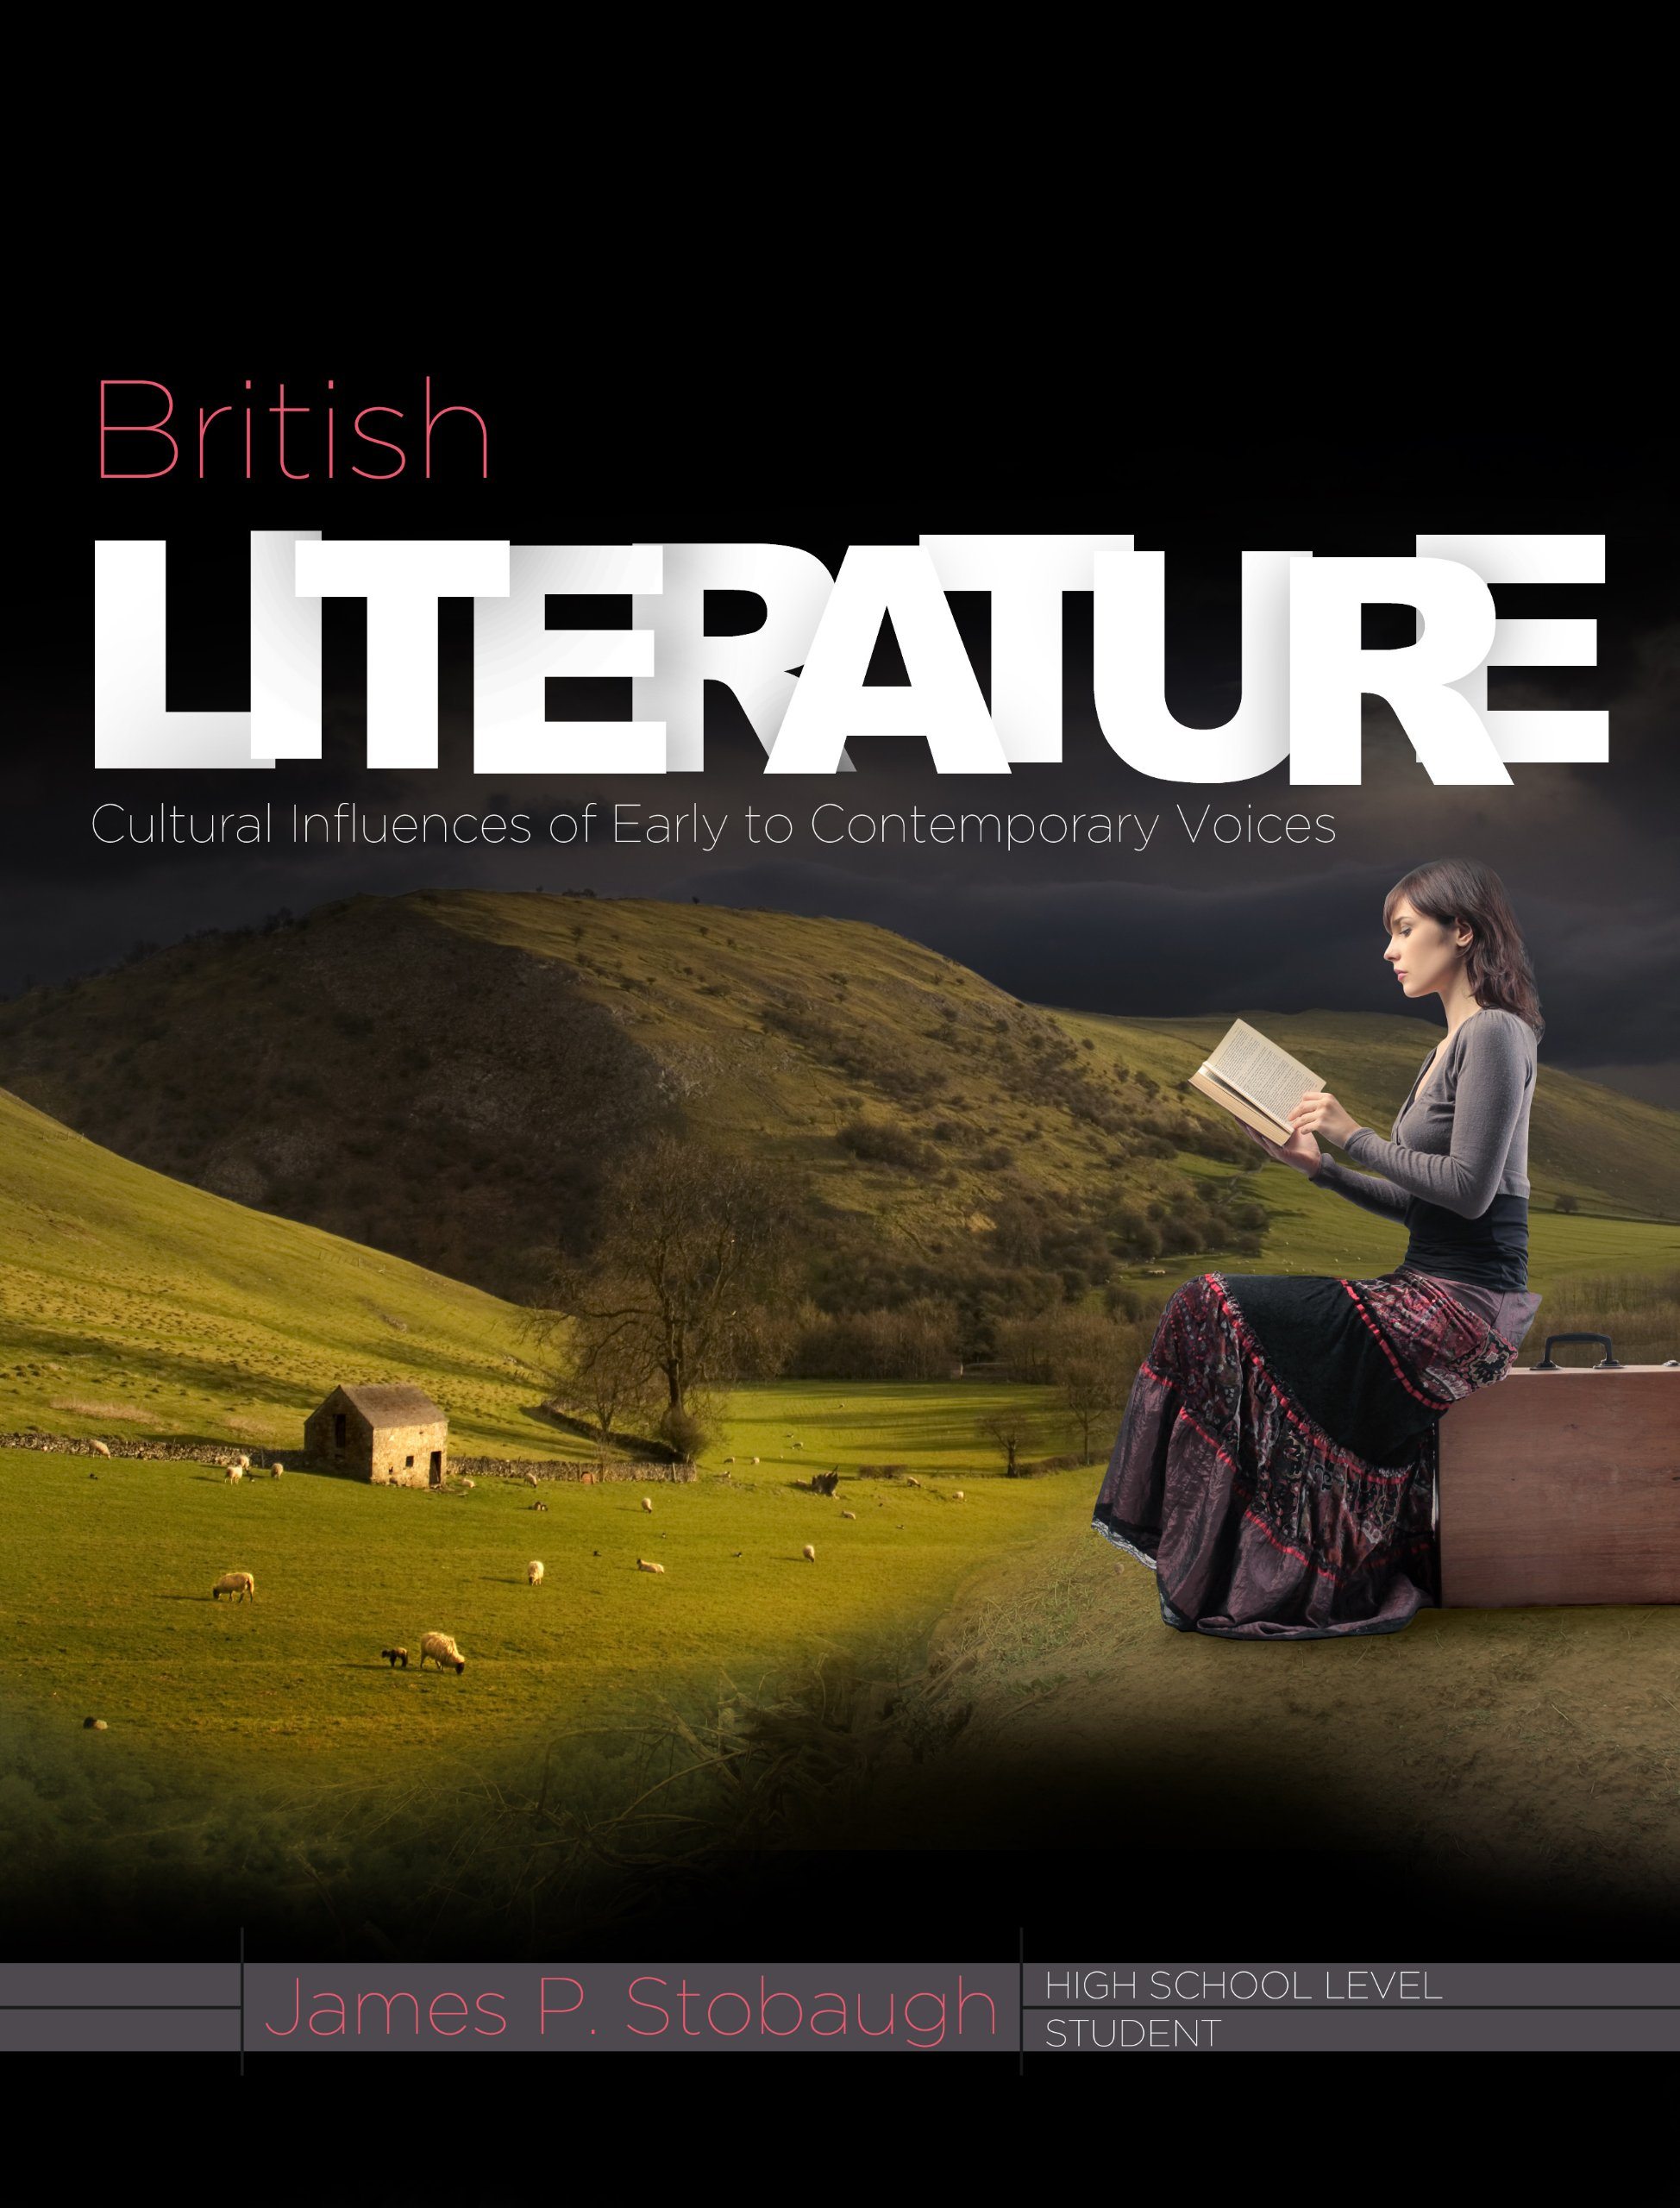 British Literature (Student) by New Leaf Publishing Group